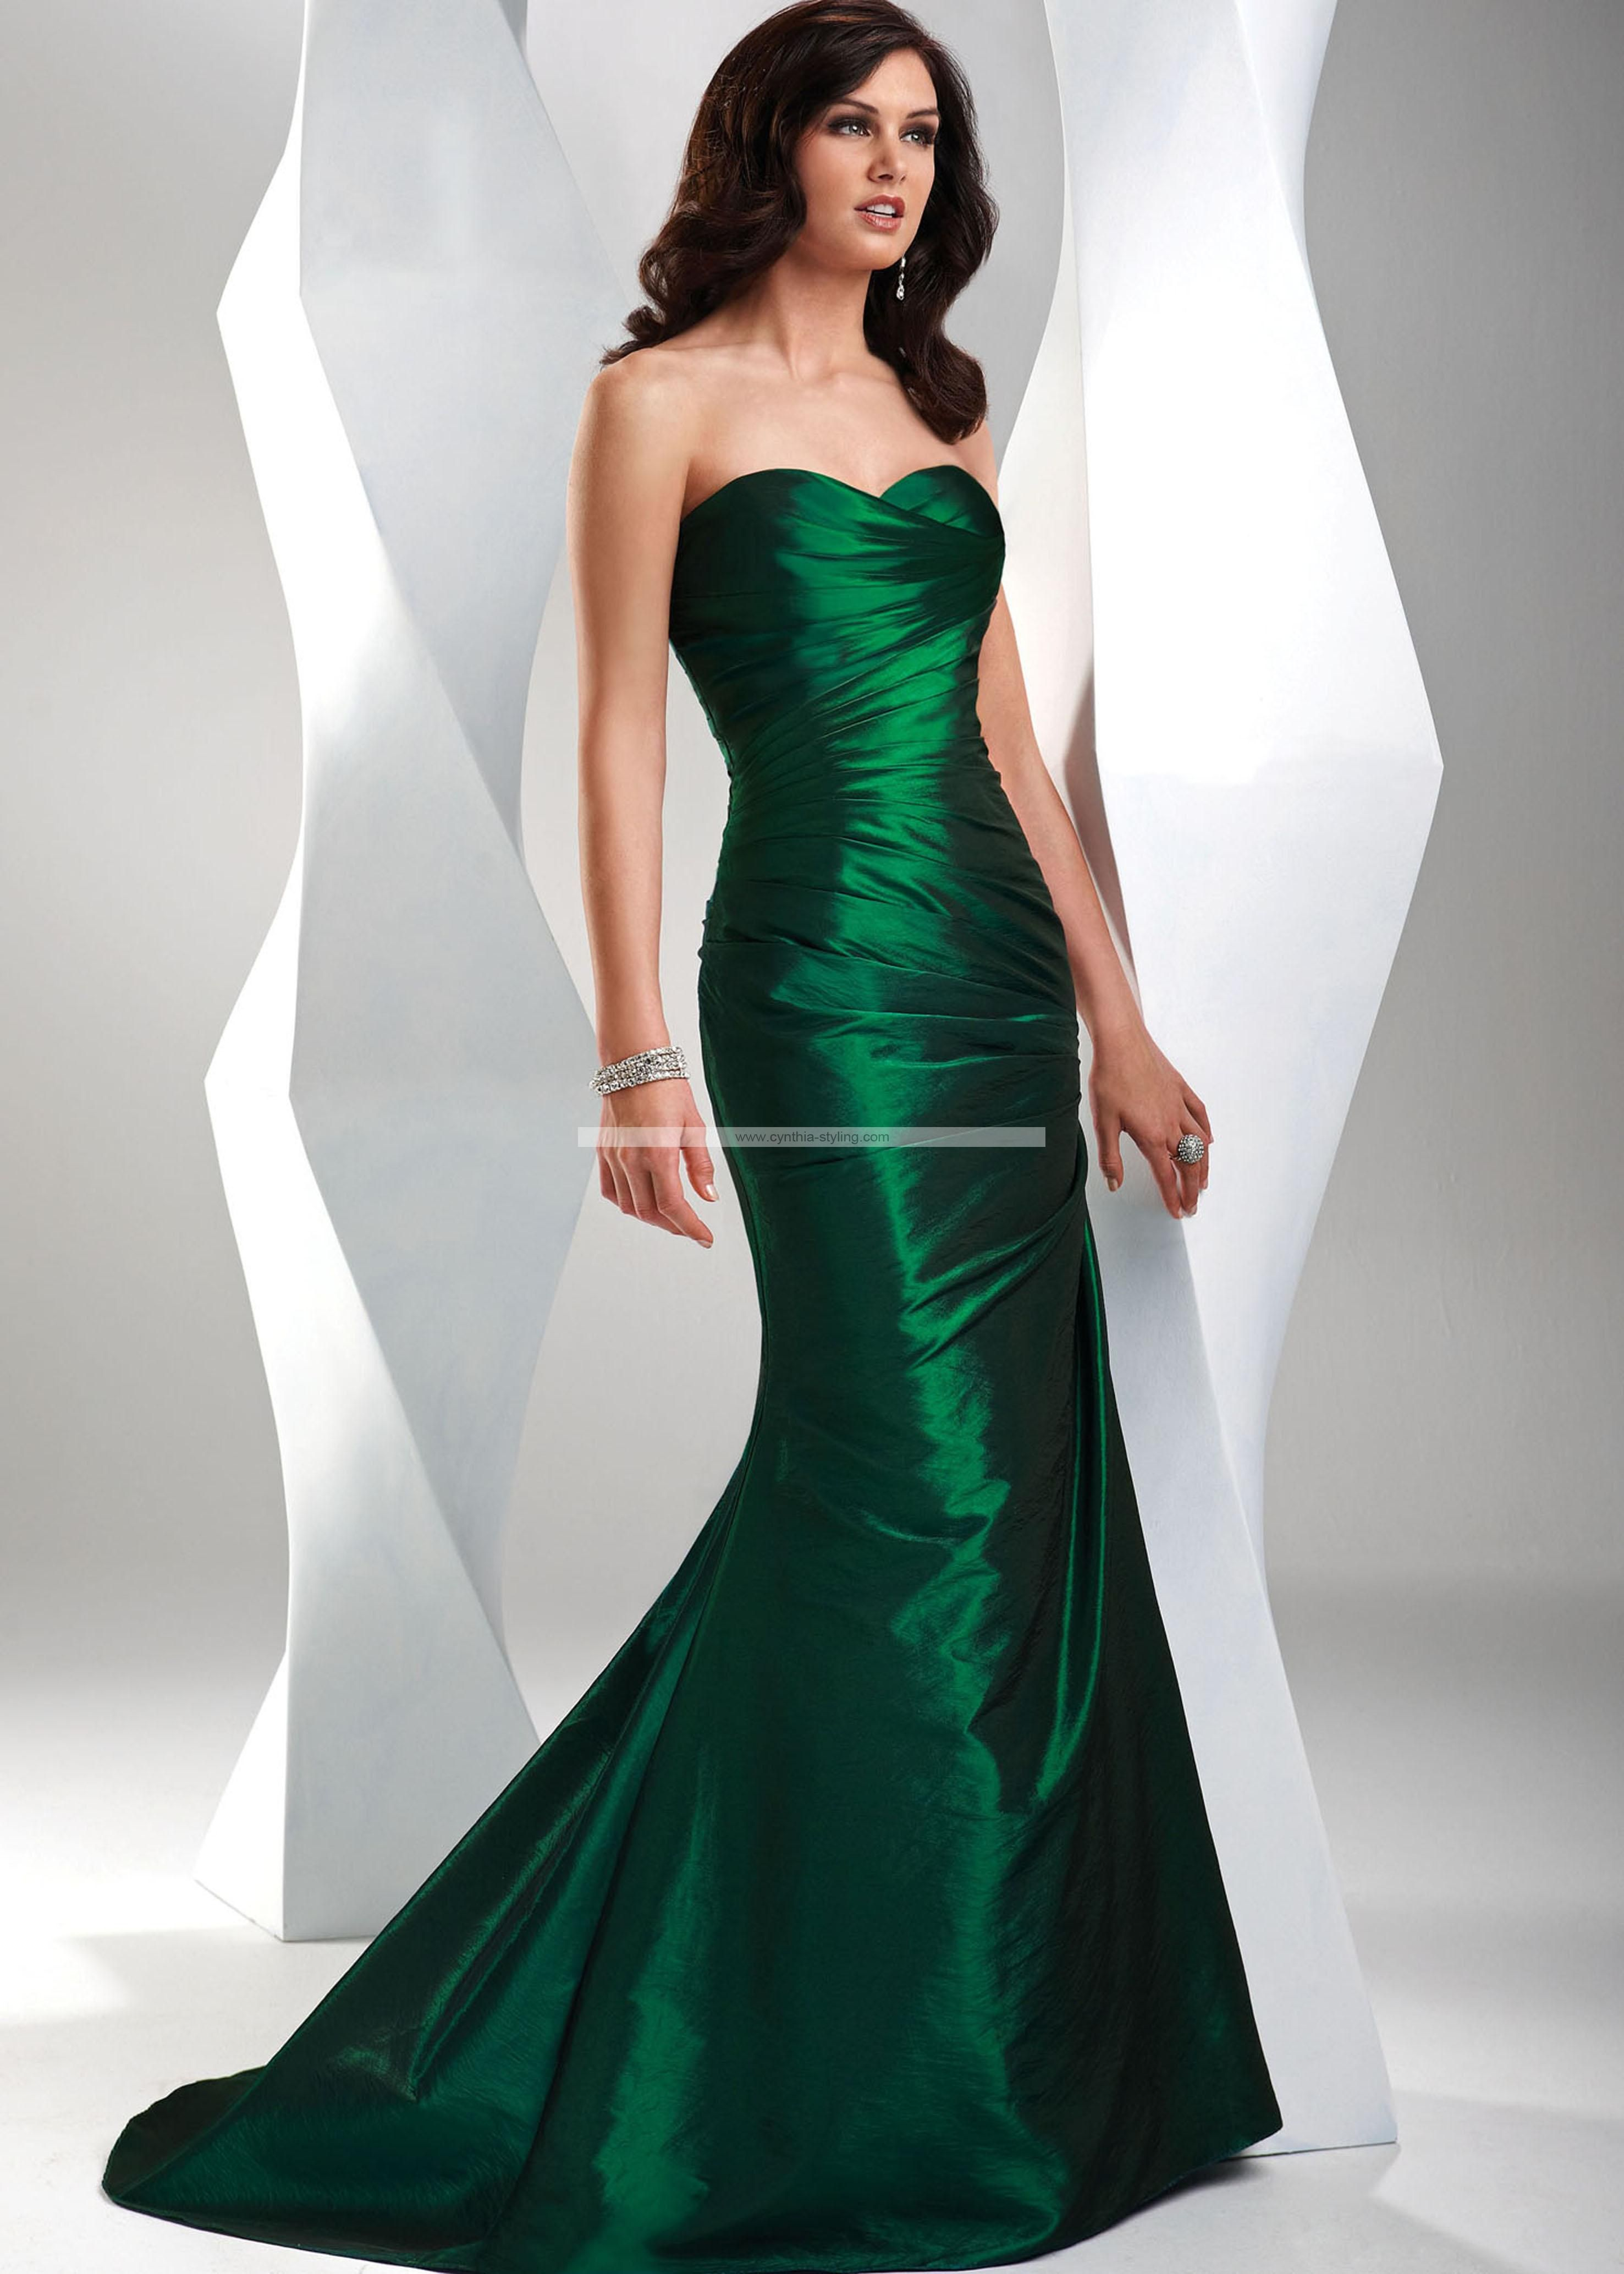 1000 images about Prom dress on Pinterest - Formal gowns- Long...